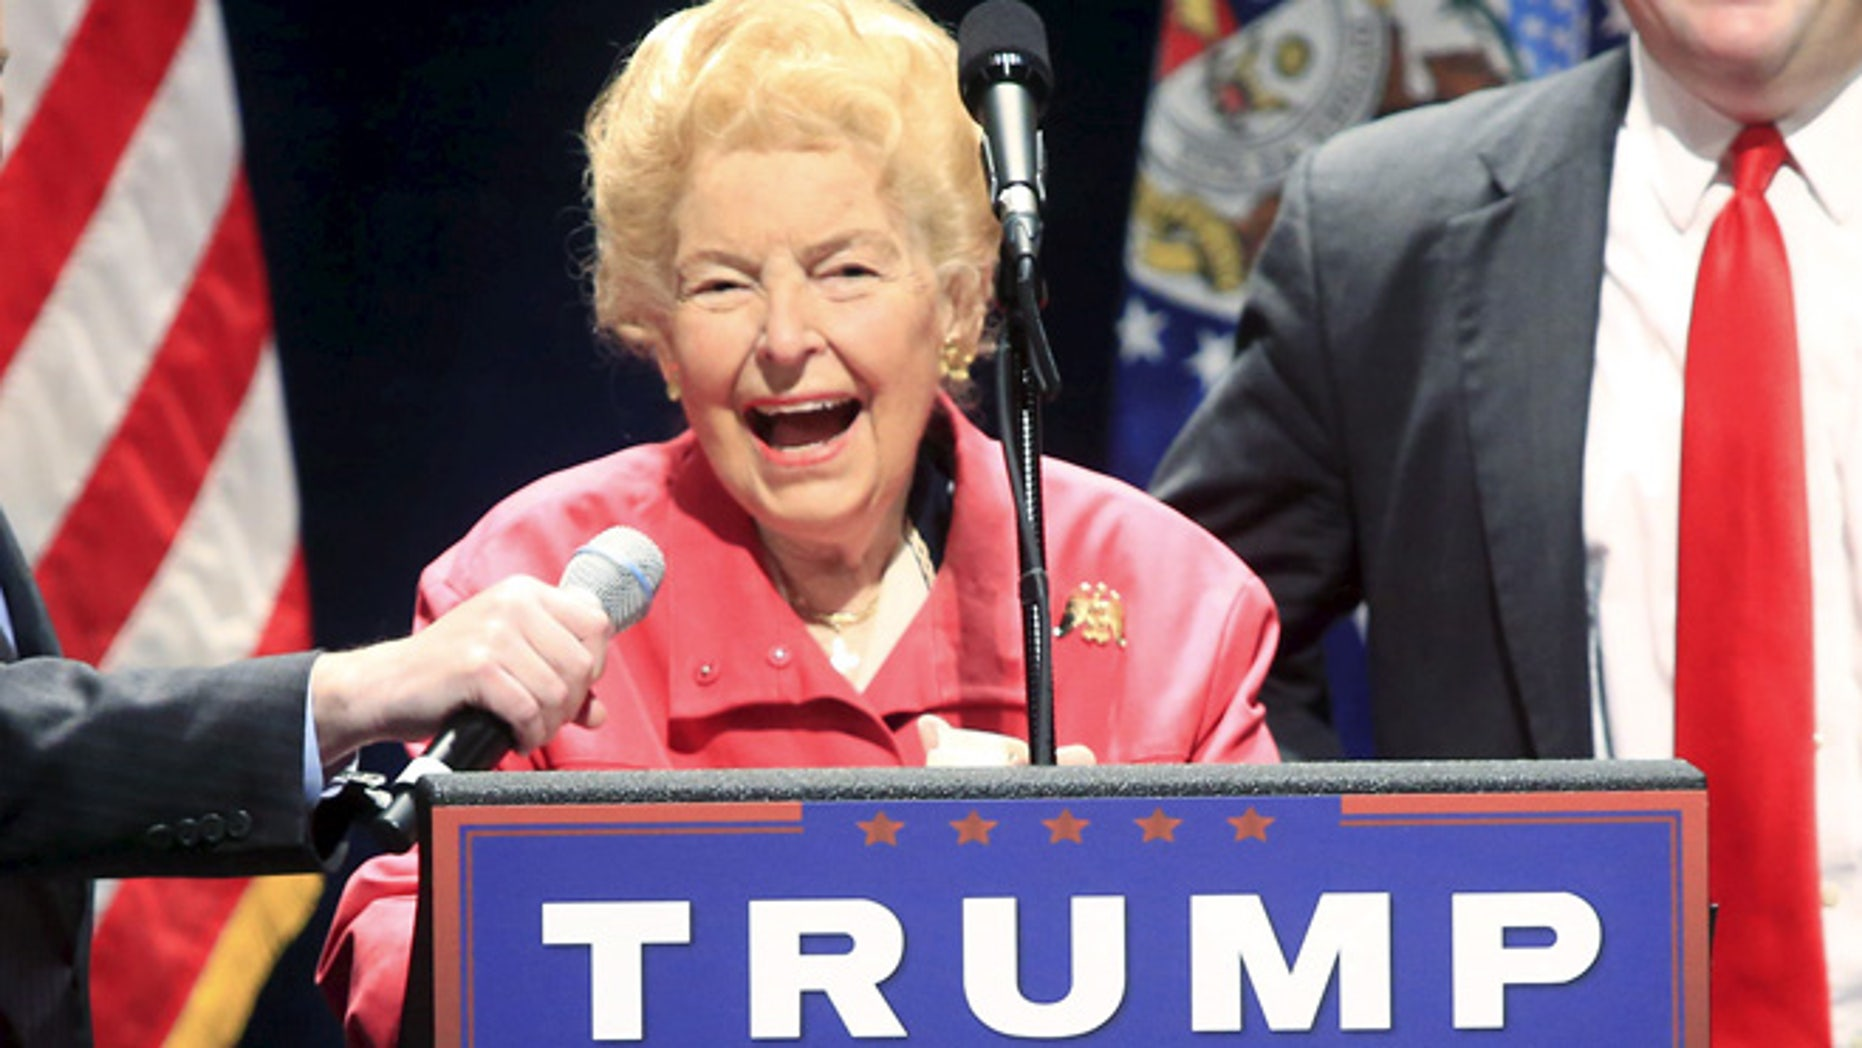 FILE: March 11, 2016: Conservative activist Phyllis Schlafly introduces GOP presidential candidate Donald Trump, Peabody Opera House in St. Louis, Mo. (REUTERS)